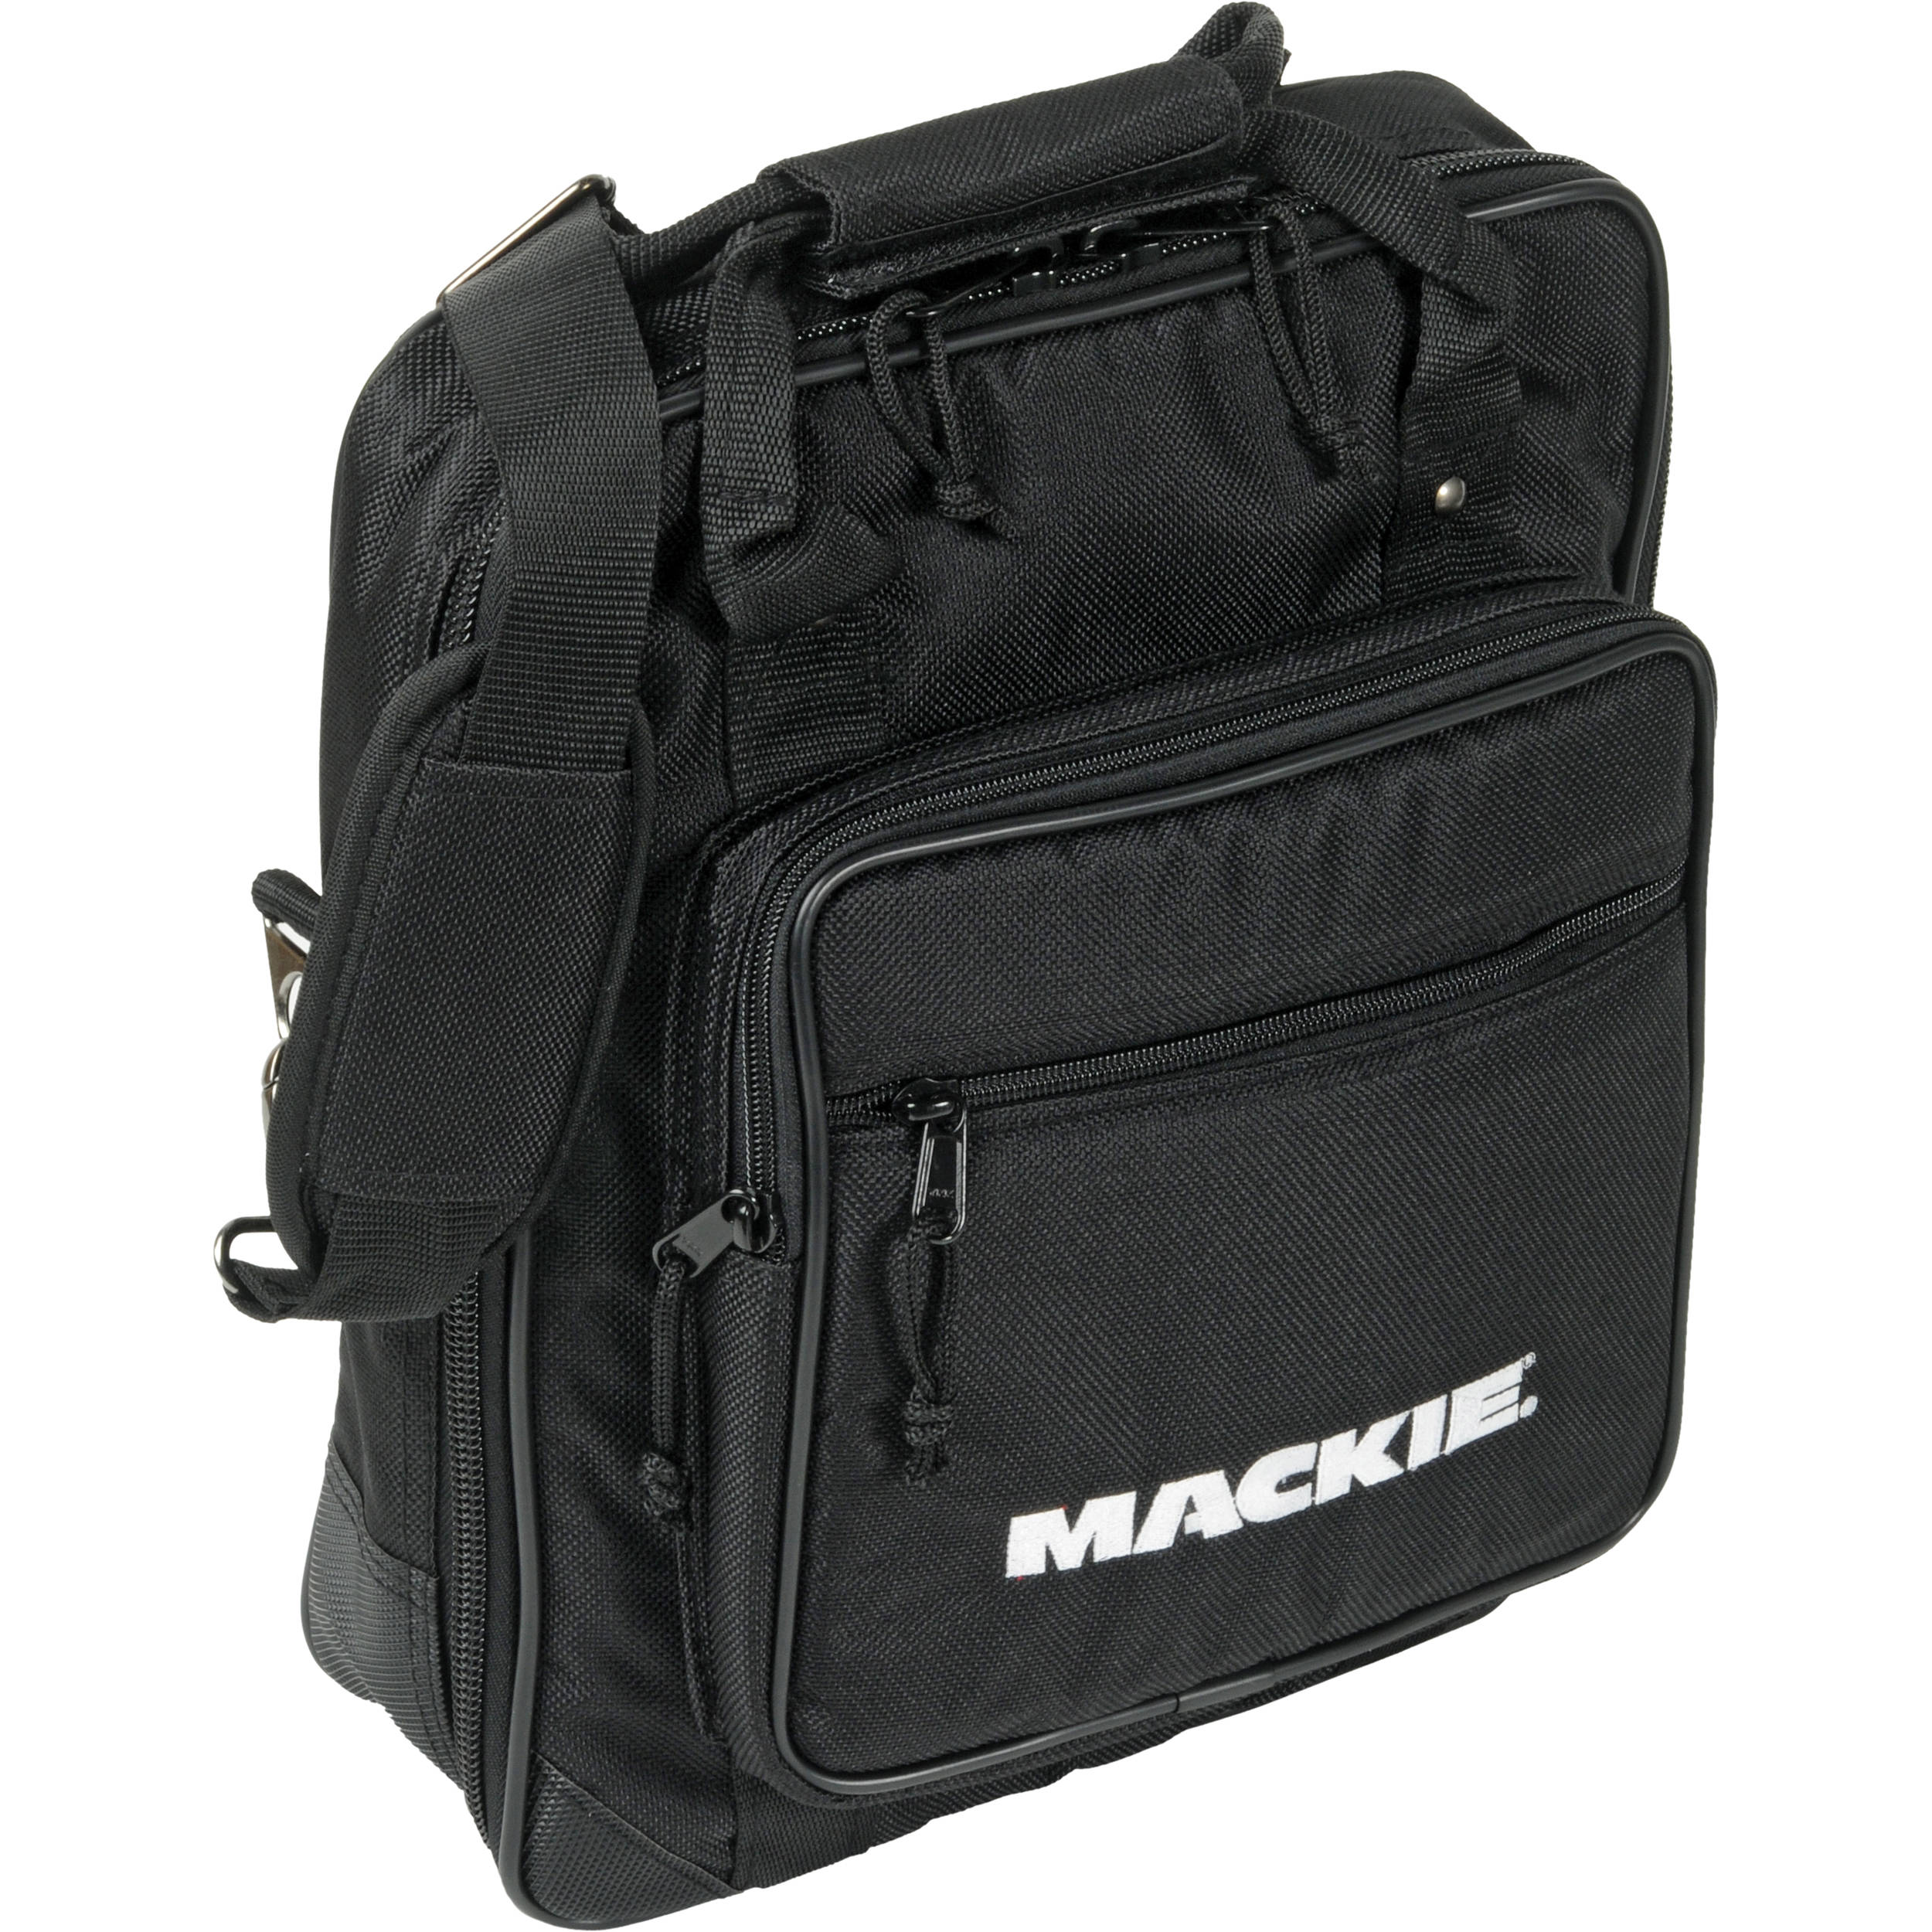 Mackie Bag For Profx8 V2 And Dfx6 Mixers